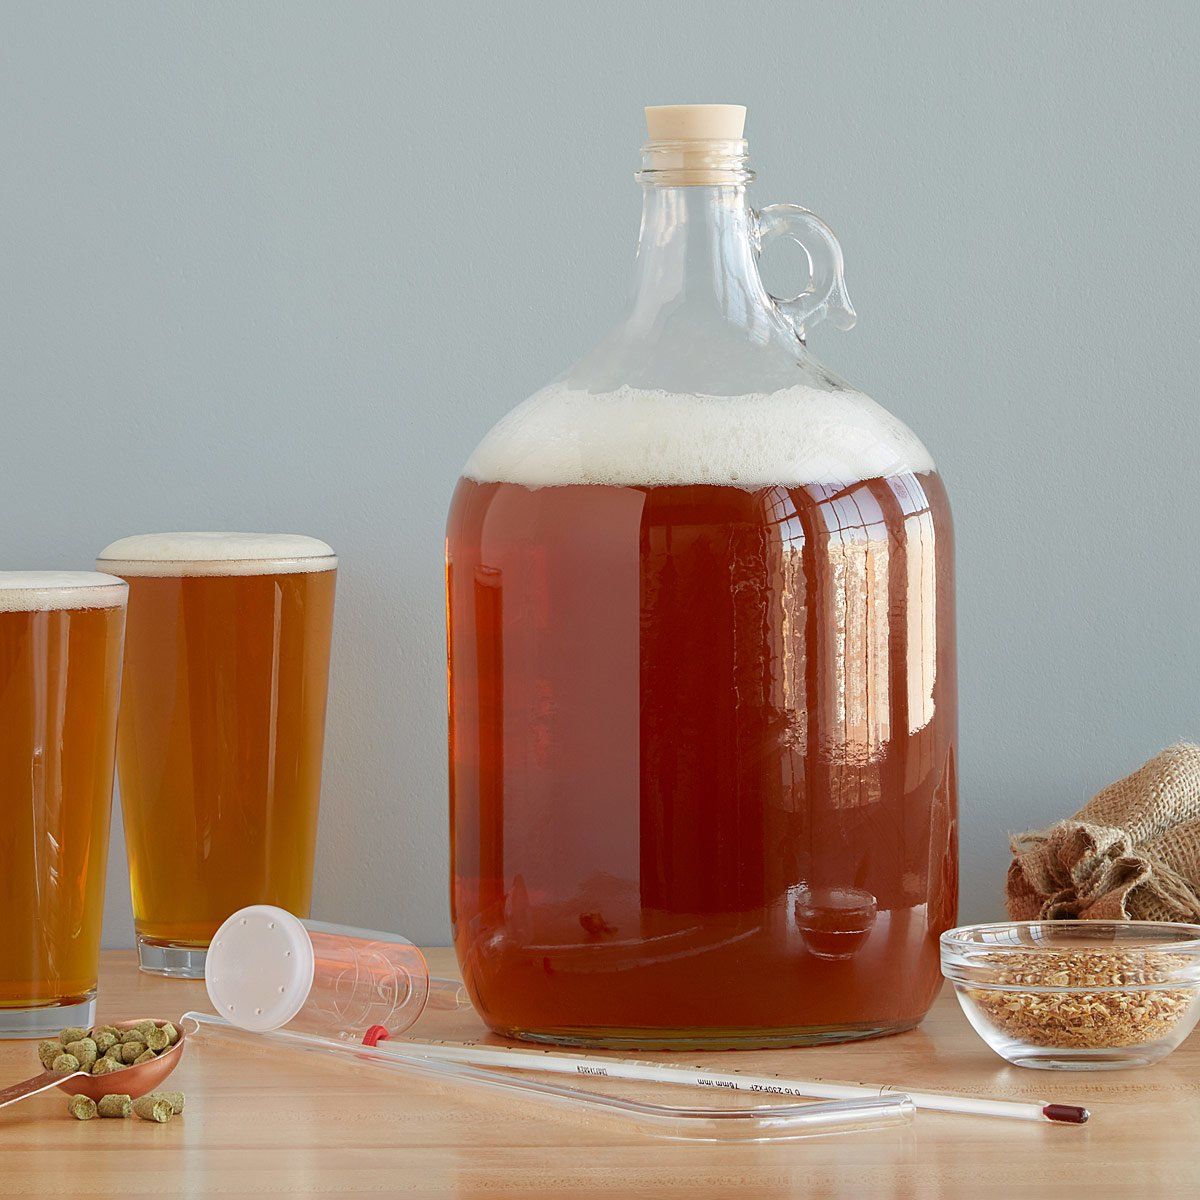 West Coast Style IPA Beer Brewing Kit | UncommonGoods